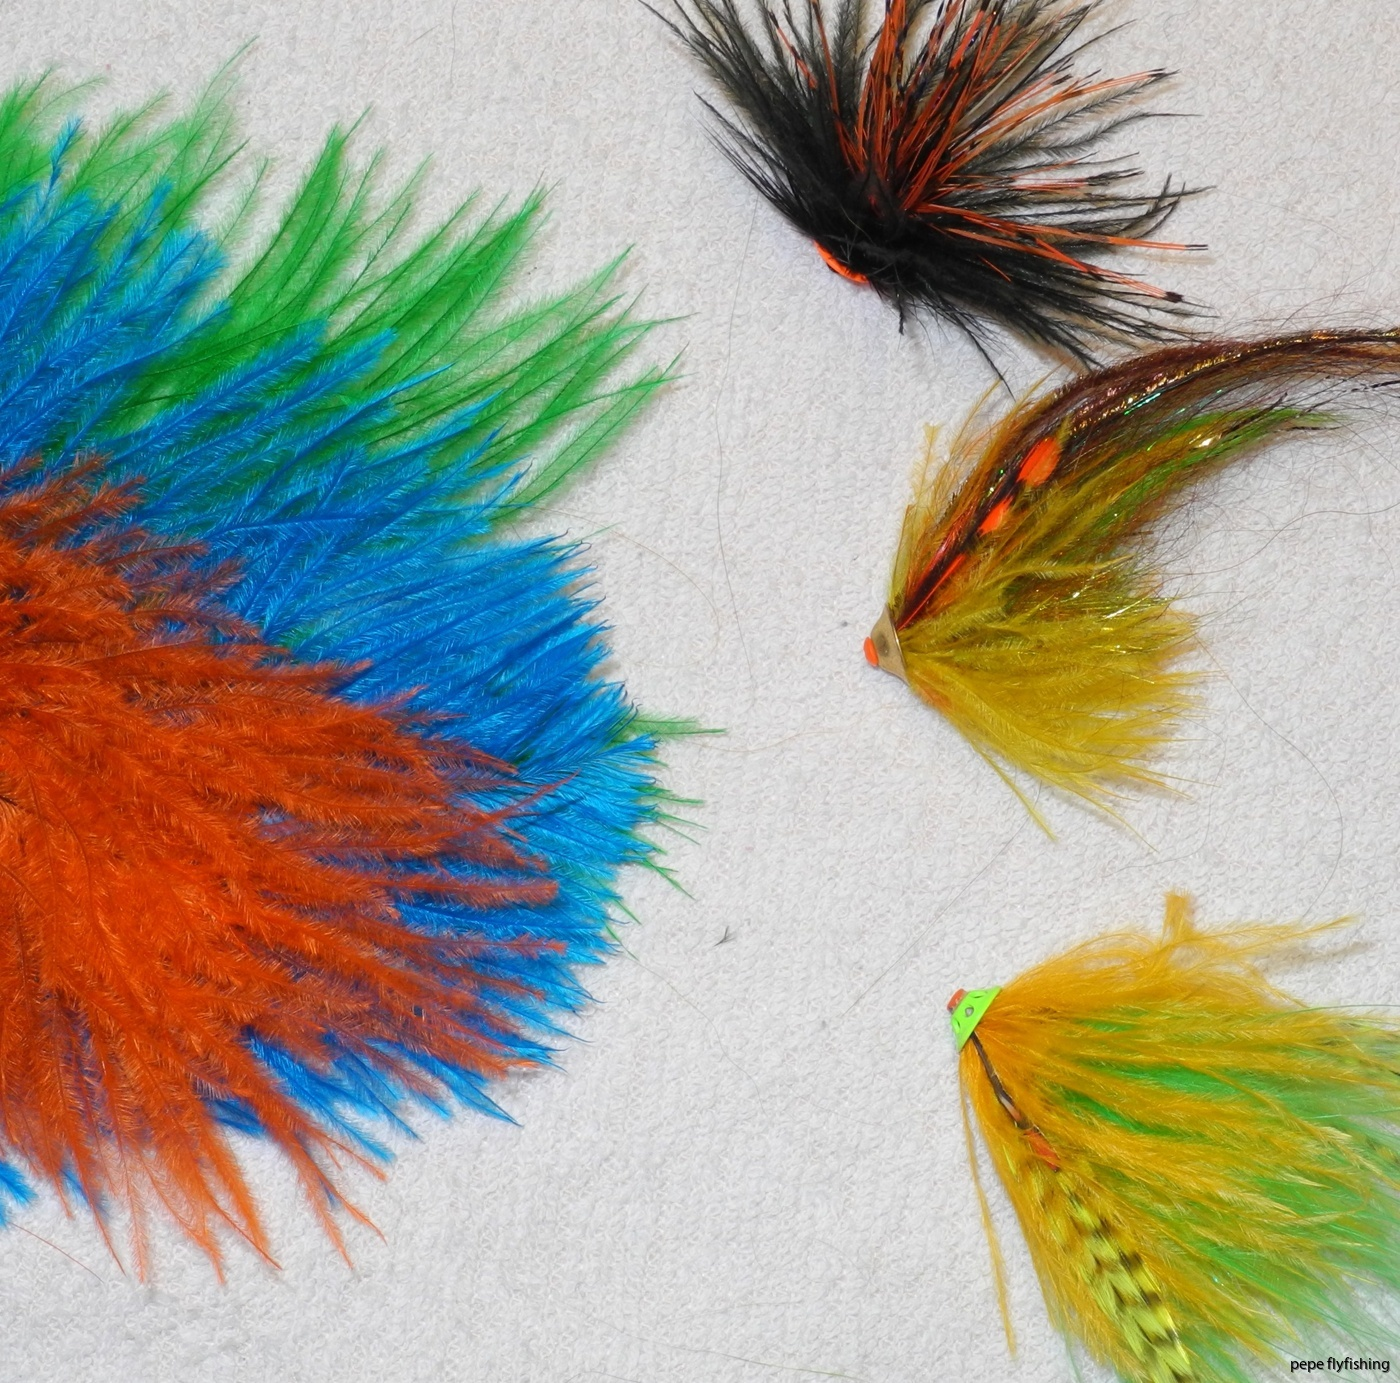 Ostrish Hackle flies